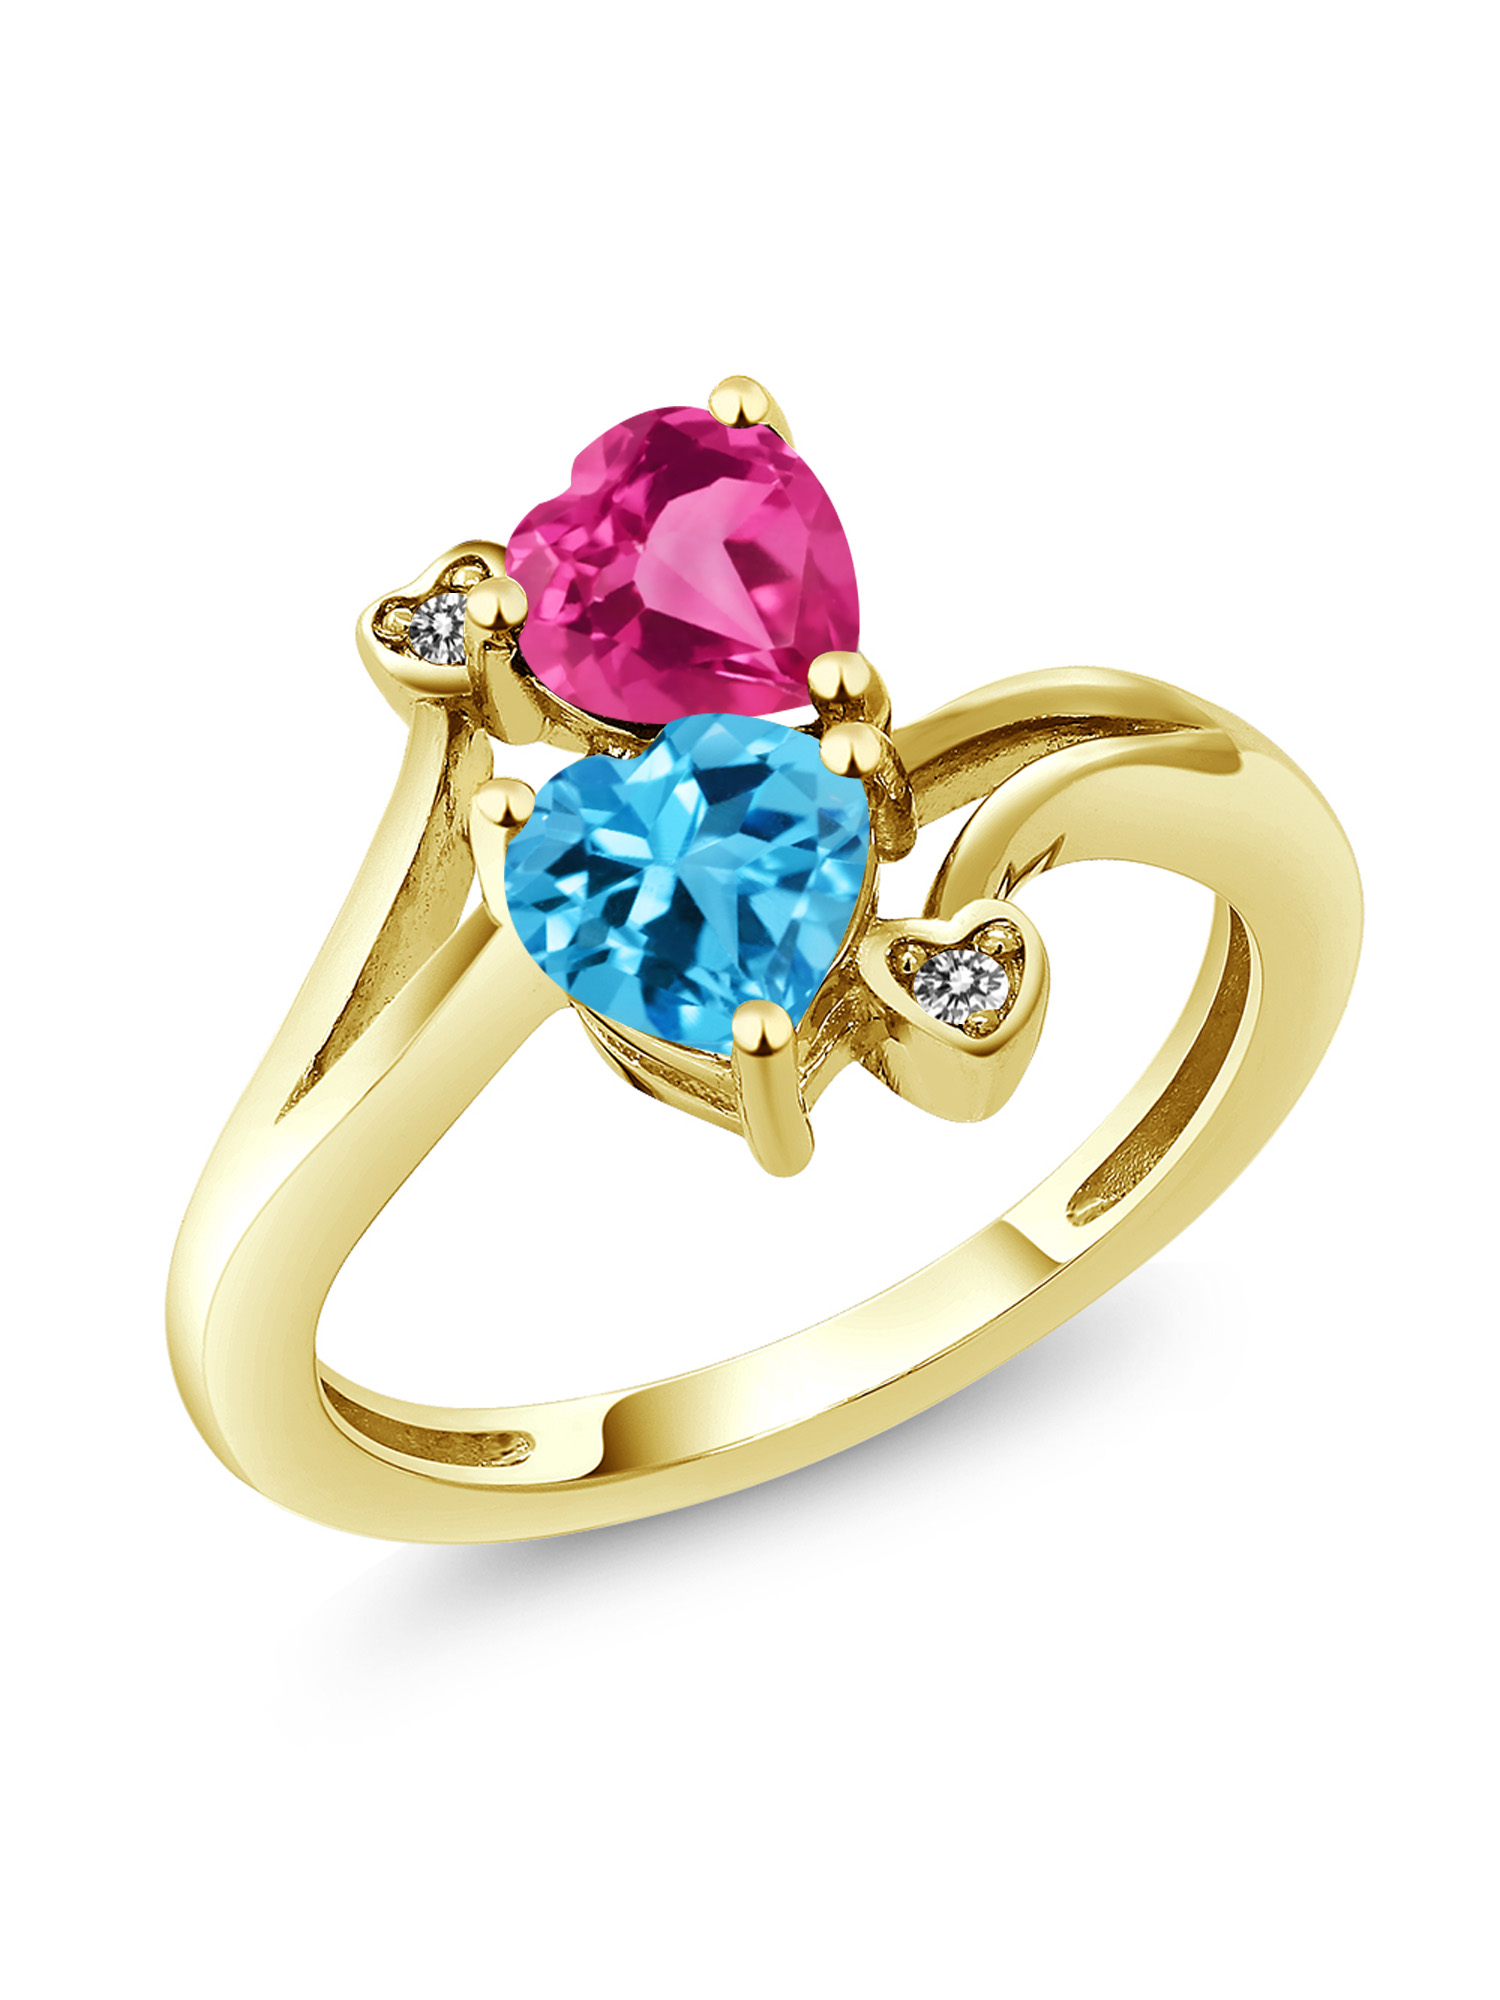 1.93 Ct Heart Shape Swiss Blue Topaz Pink Mystic Topaz 10K Yellow Gold Ring by